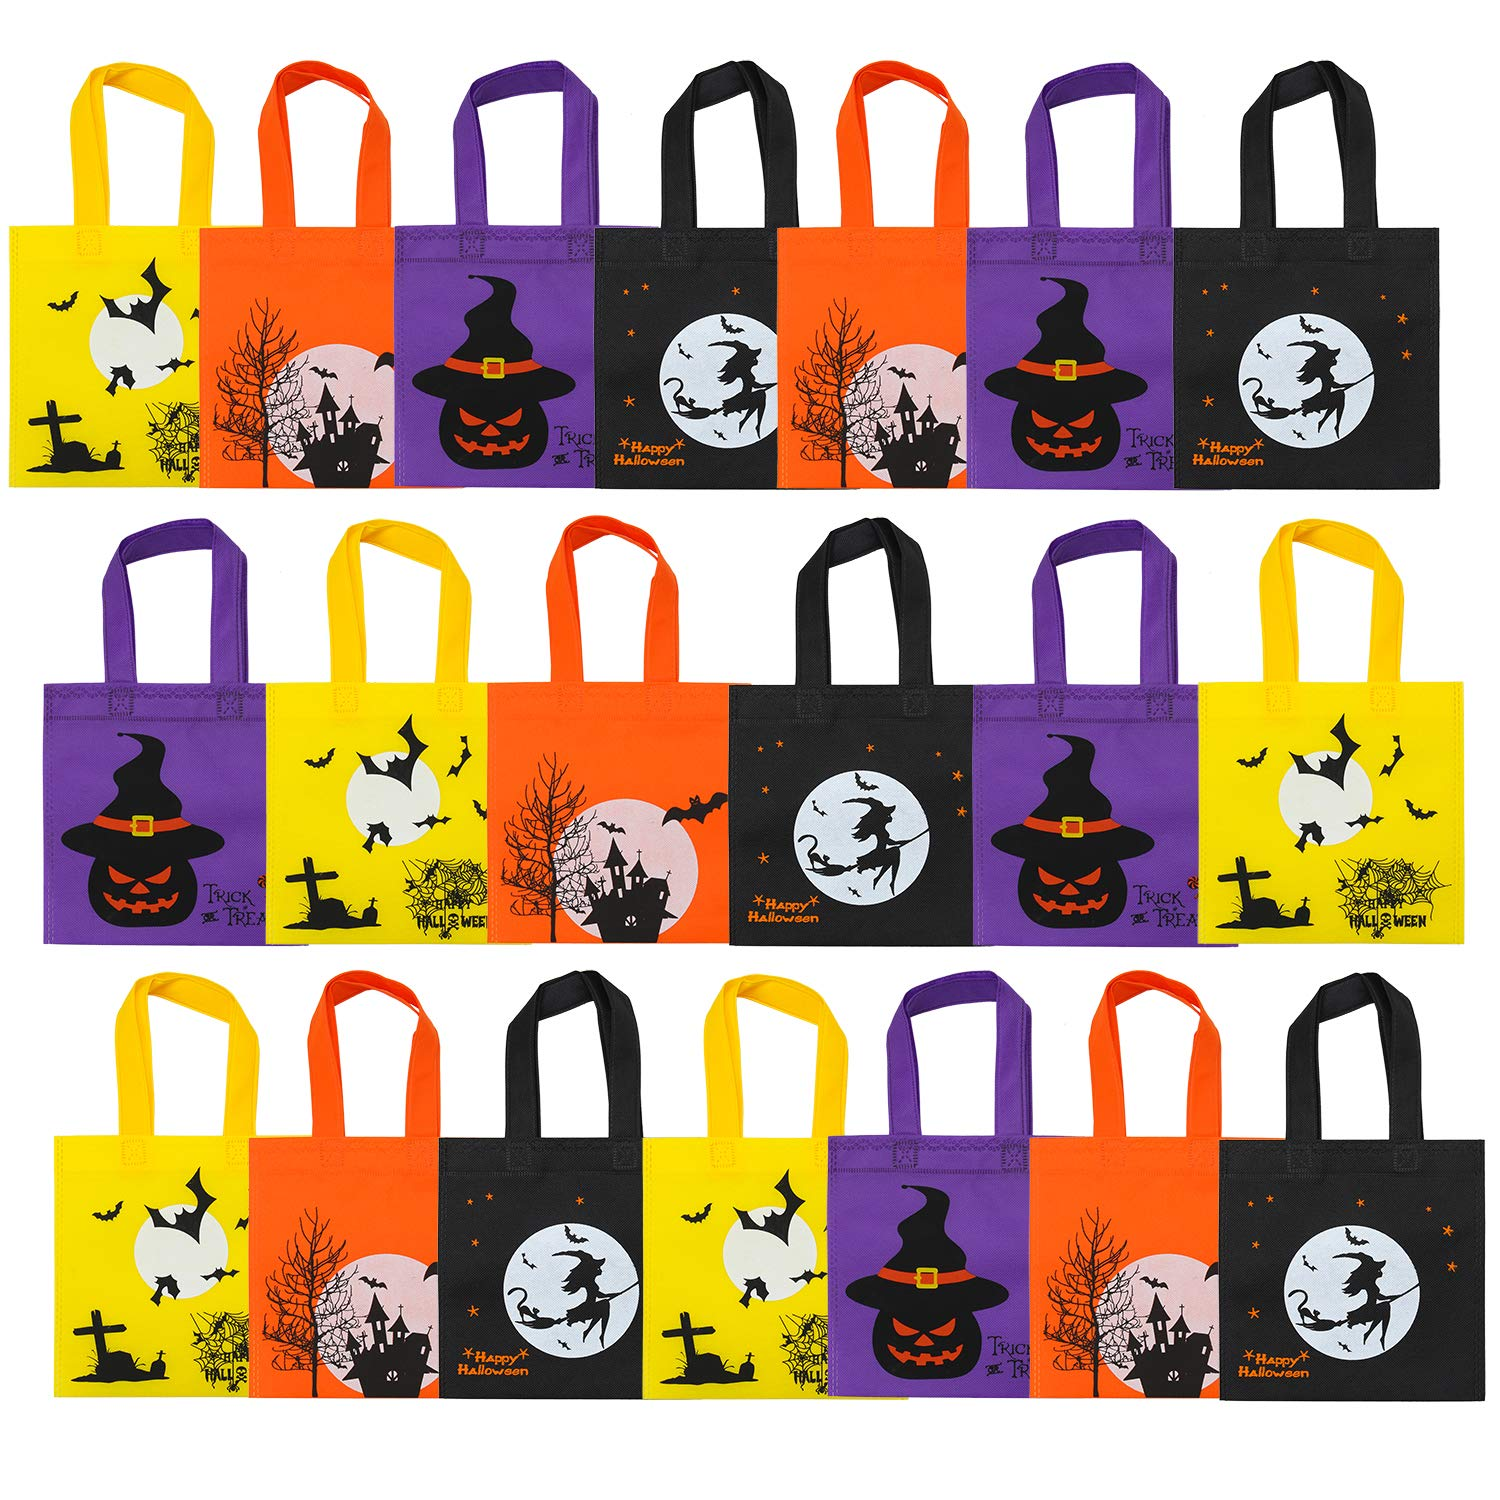 Elcoho 20 Packs Halloween Non-Woven Bags Trick or Treat Gift Bags Party Goodie Tote Bags Treat Bag with Handles Party Favors, 8 by 8 Inches, 4 Colors by Elcoho